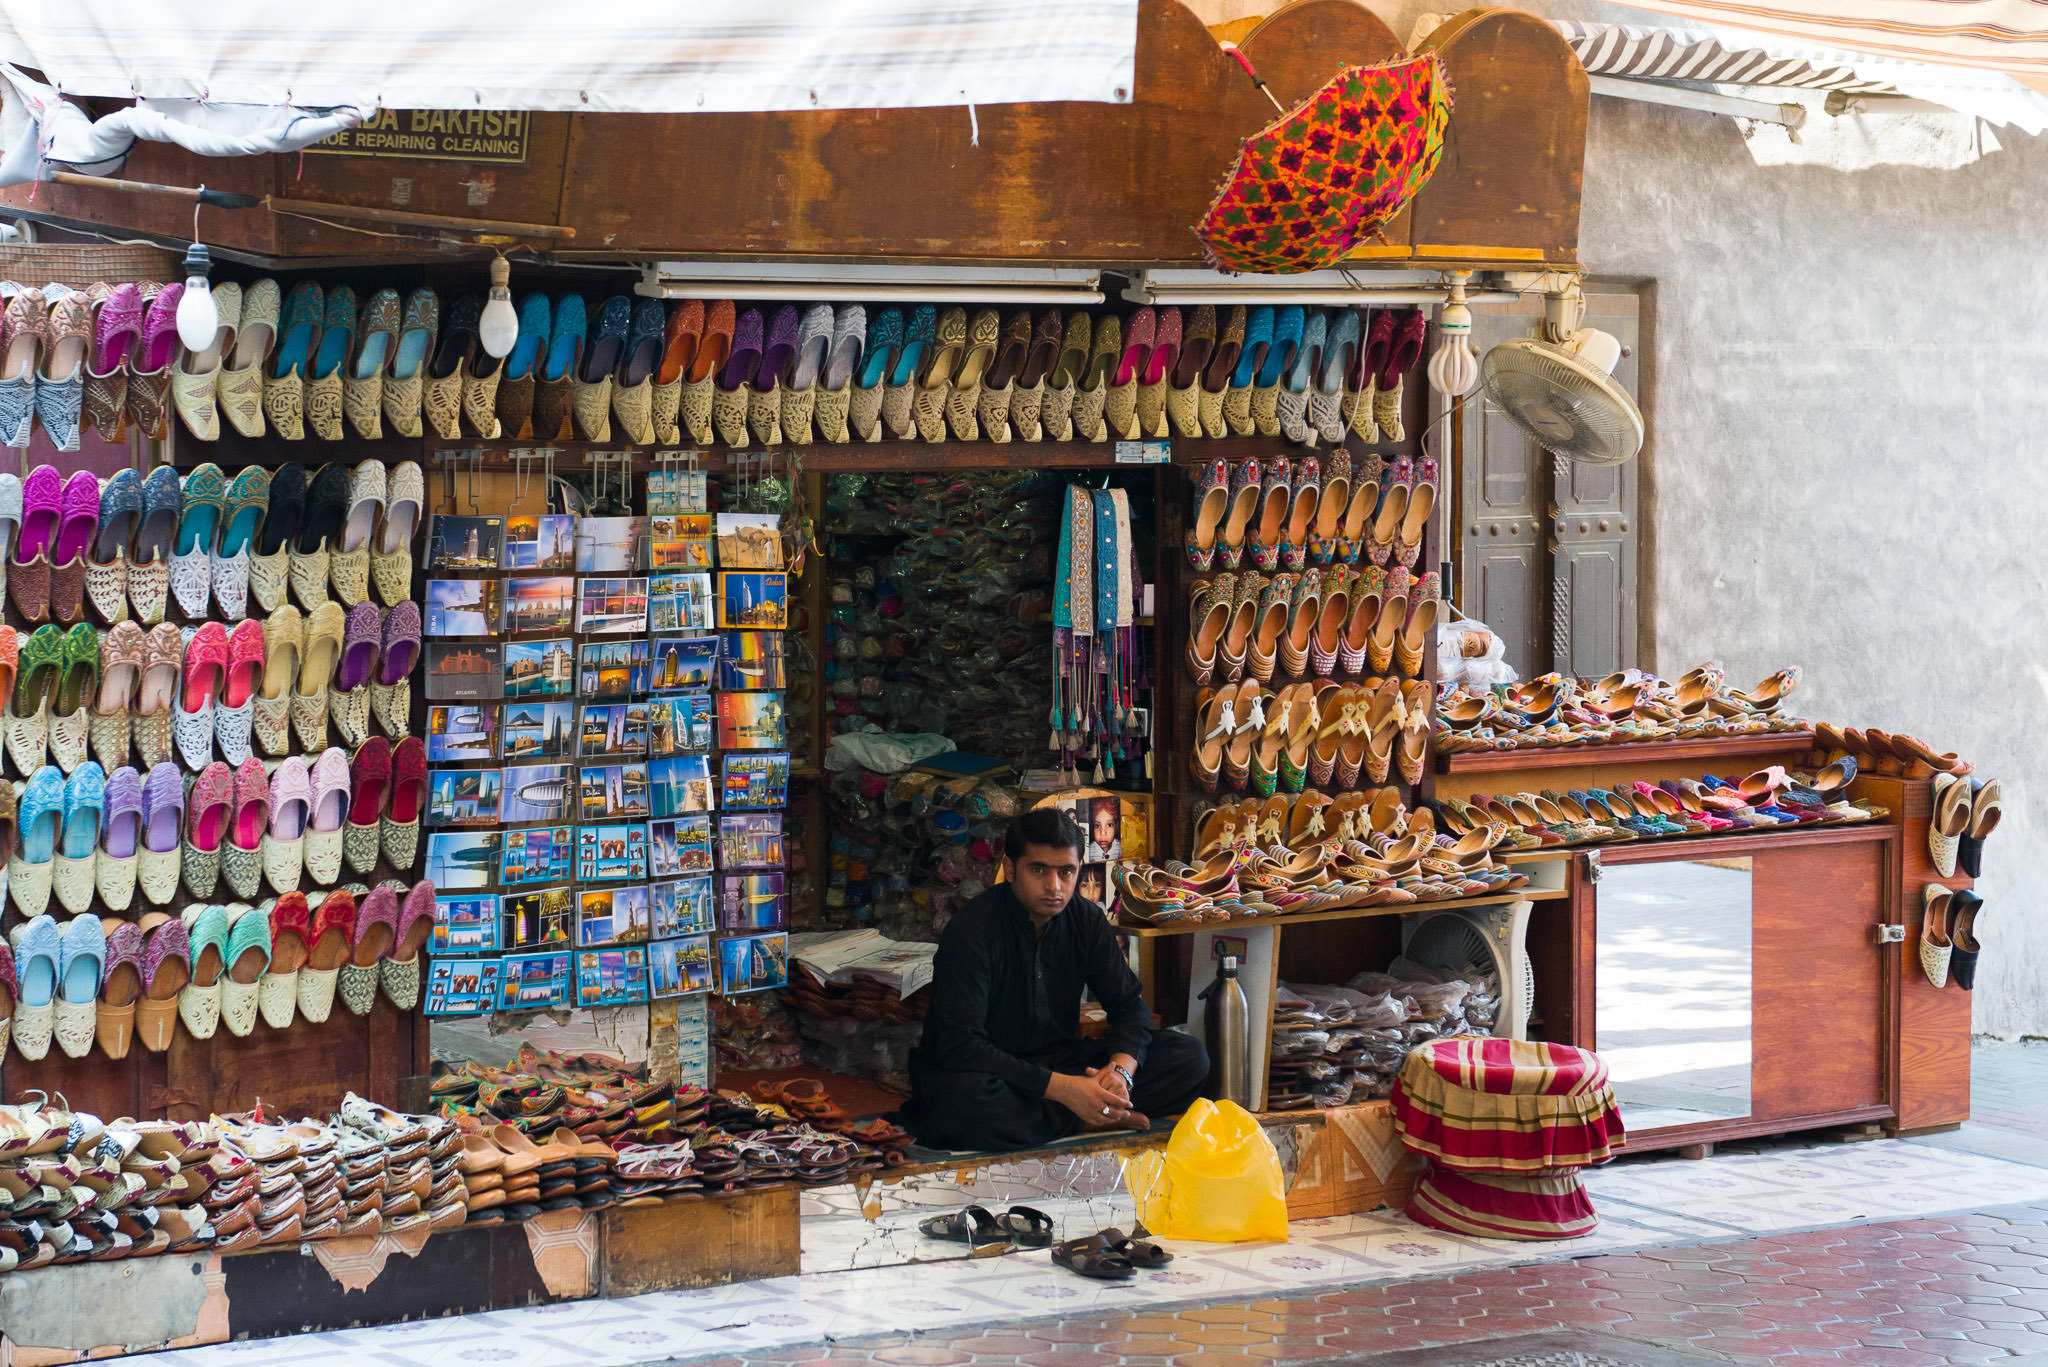 Shoe shop near Indian Textile Market, Dubai